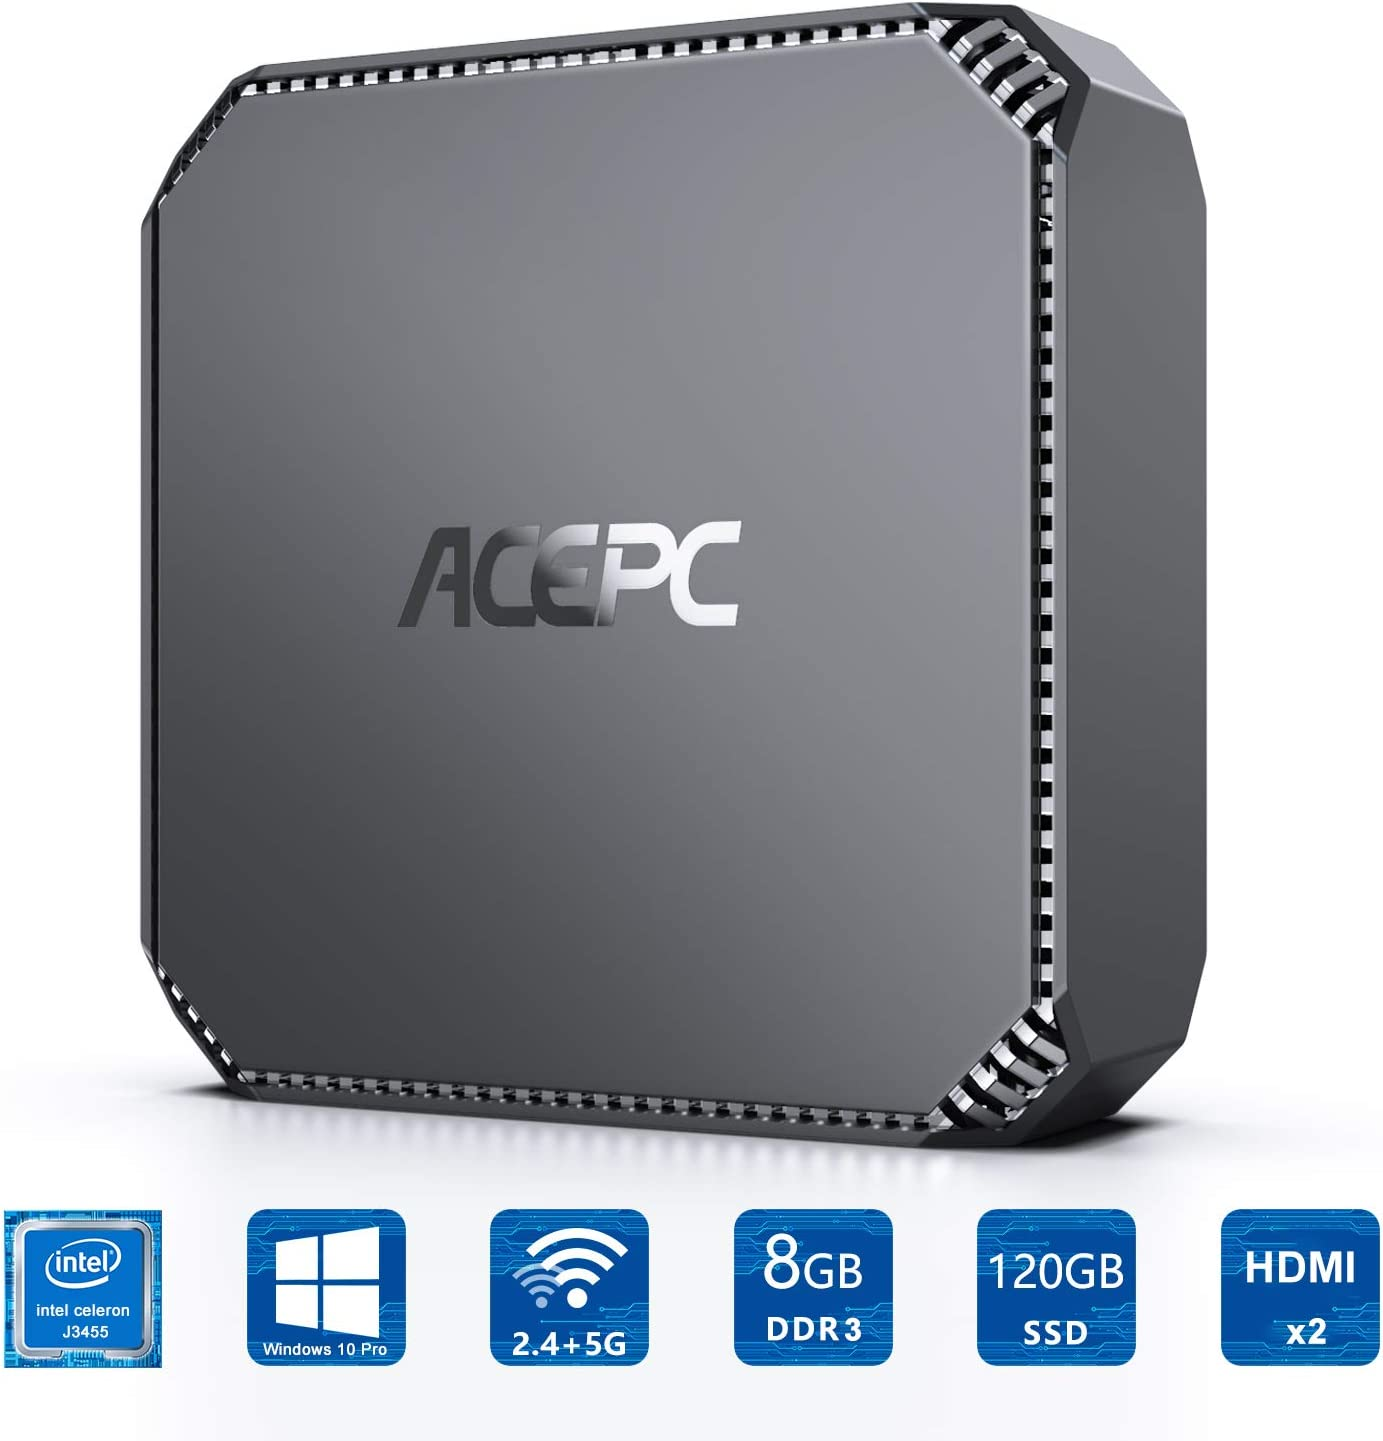 ACEPC AK2 Mini PC, Windows 10 Pro(64-bit) Intel Celeron J3455 Processor(up to 2.3GHz) Desktop Computer,8GB DDR3 120GB SSD,Dual Display at 4K HD,2.4G+5G Dual-Band WiFi,Gigabit Ethernet,BT 4.2